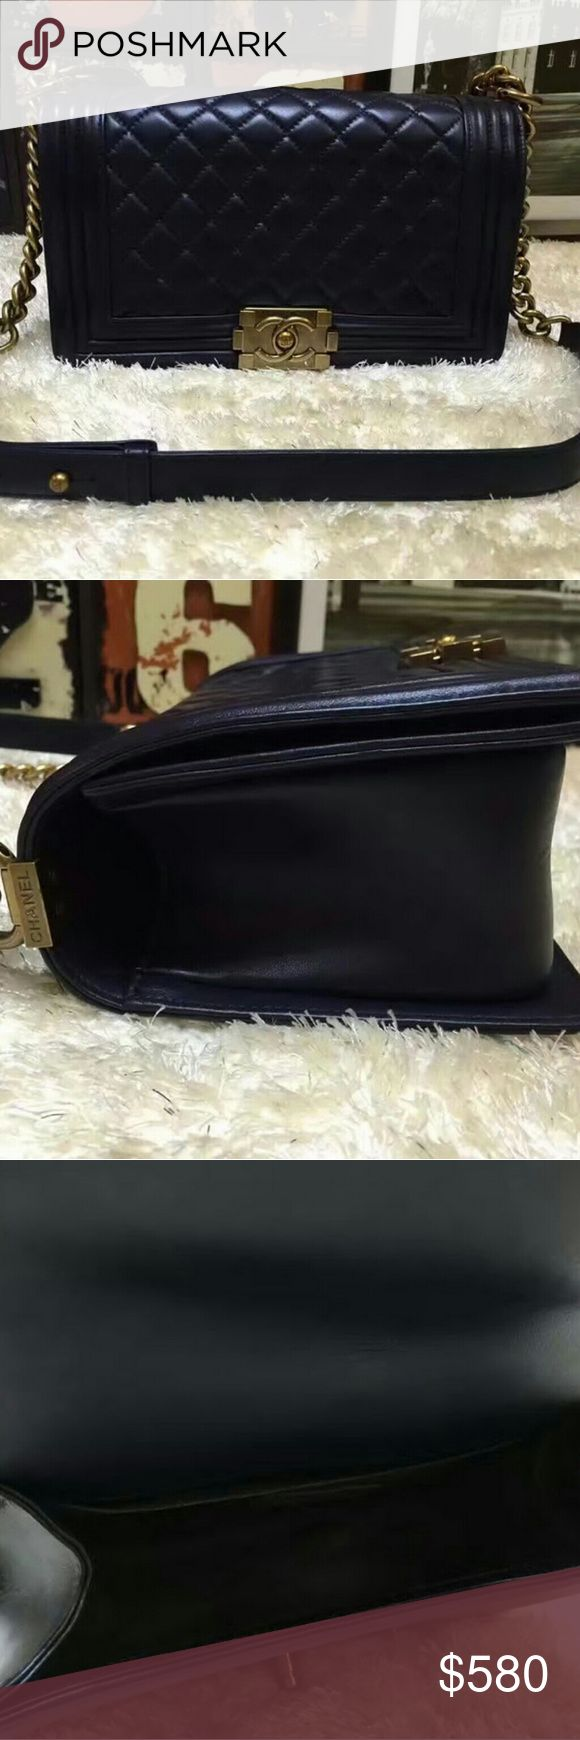 """Discount handbags bags read description To see more photos on Instagram ID: """"bellayeezycom"""" . pls comment your email or contact us so that we can give you new discounts and show you many good reviews. WhatsAPP: +8617128079630 or Email: toplvbags@outlook.com also welcome to comment your email or whatsapp for new discounts. thank you chanel Bags"""